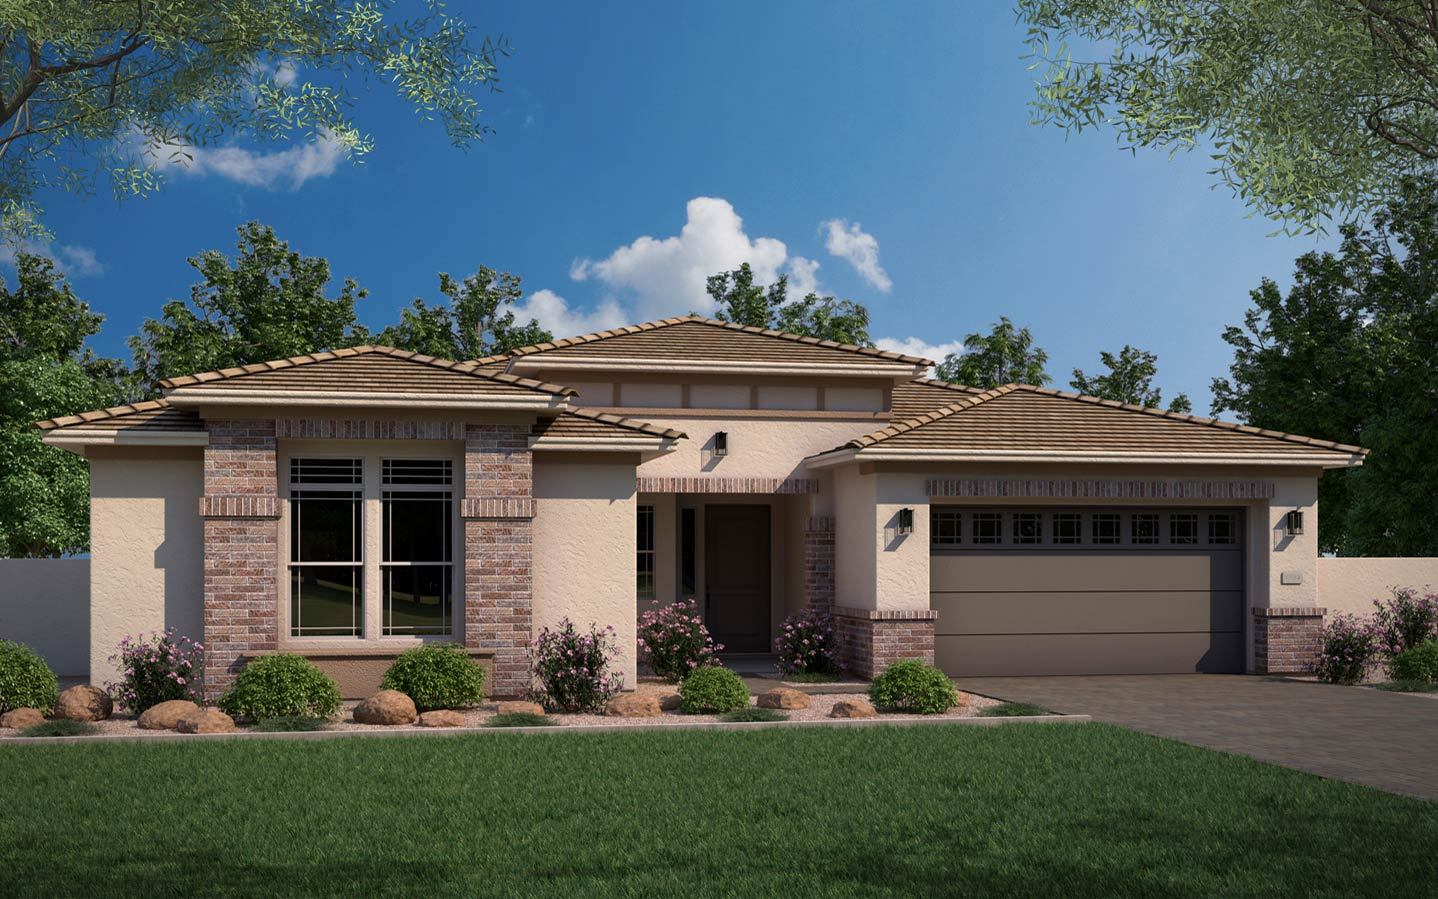 Single Family for Active at Residence 3 2130 E. Aquarius Place Chandler, Arizona 85249 United States